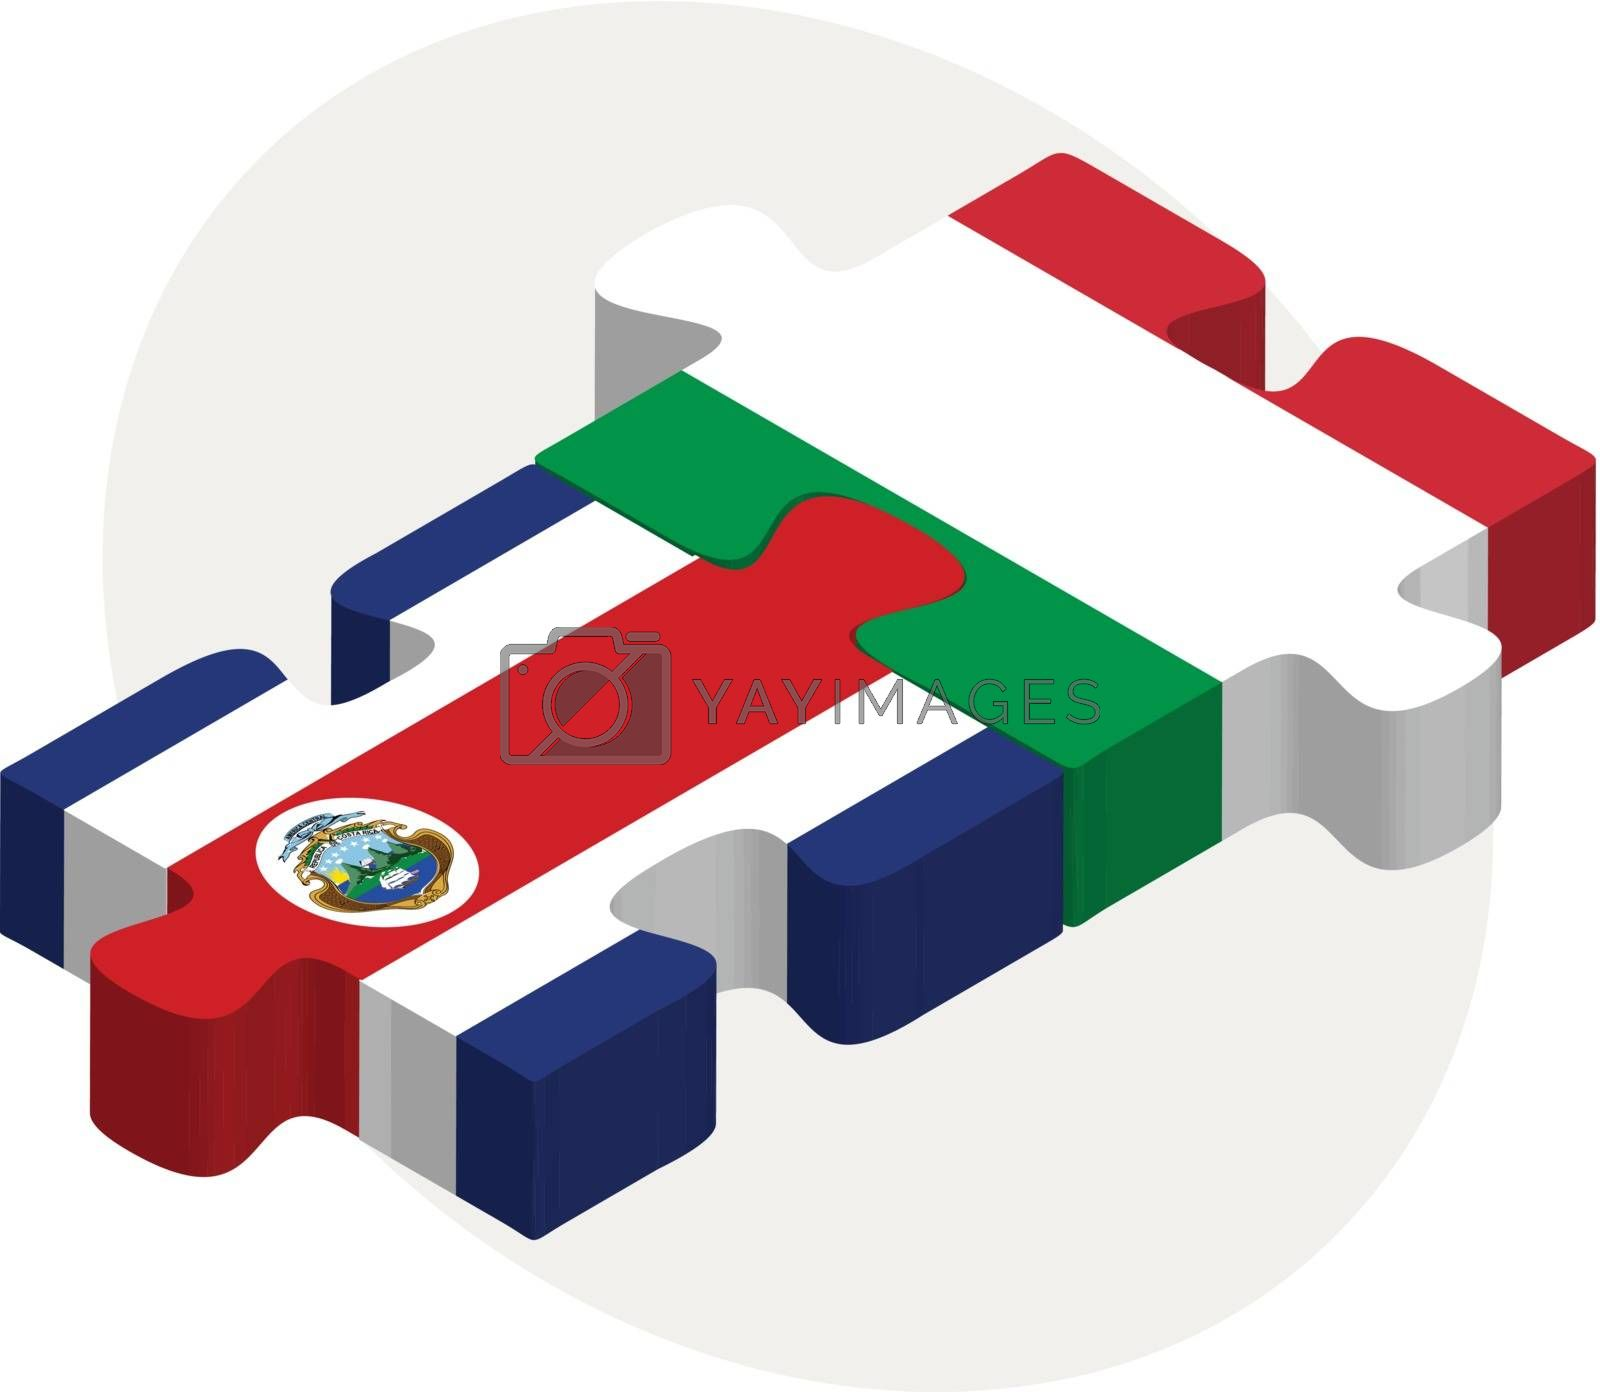 Italy and Costa Rica Flags in puzzle by Istanbul2009